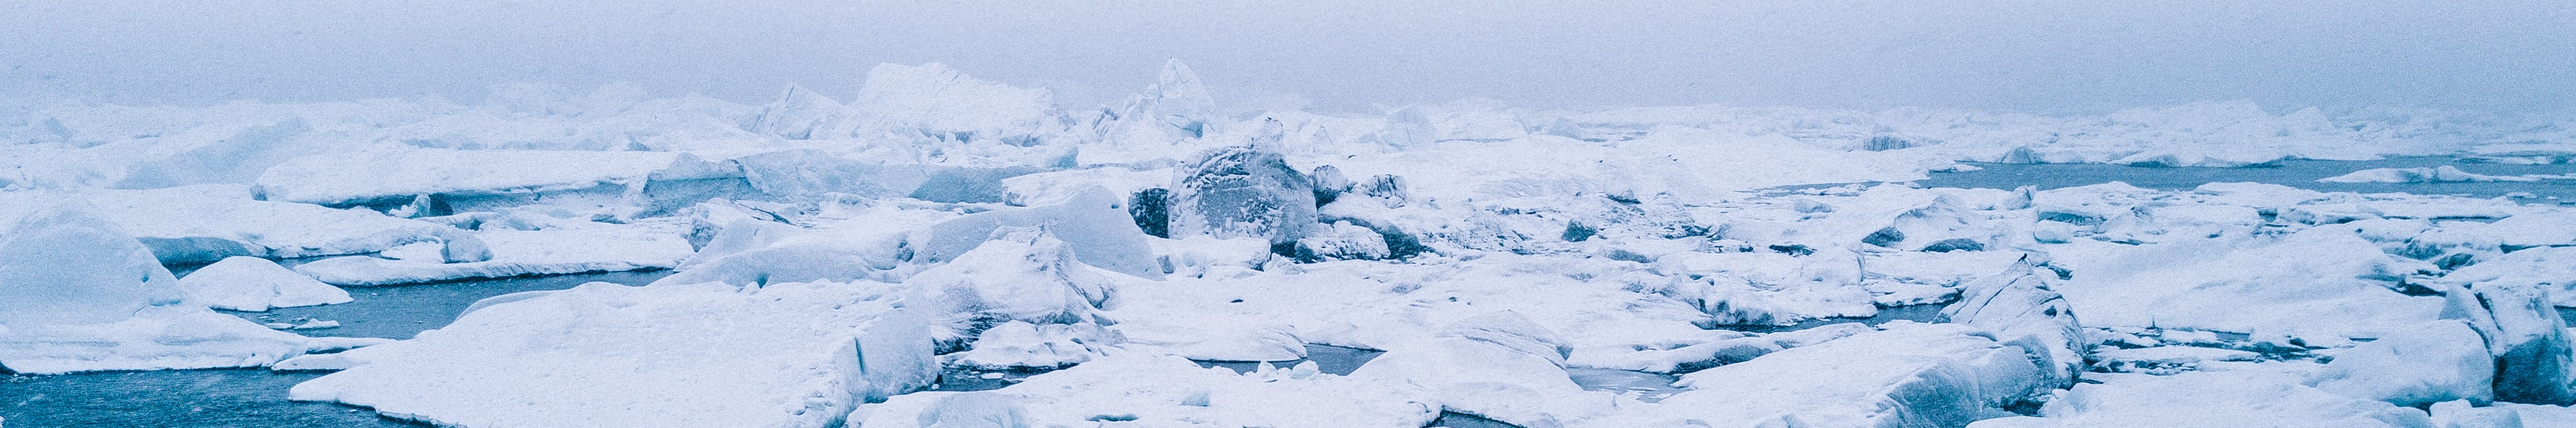 Gazprom's O&G exploration activities are contributing marine ecosystem's destruction in the Arctic